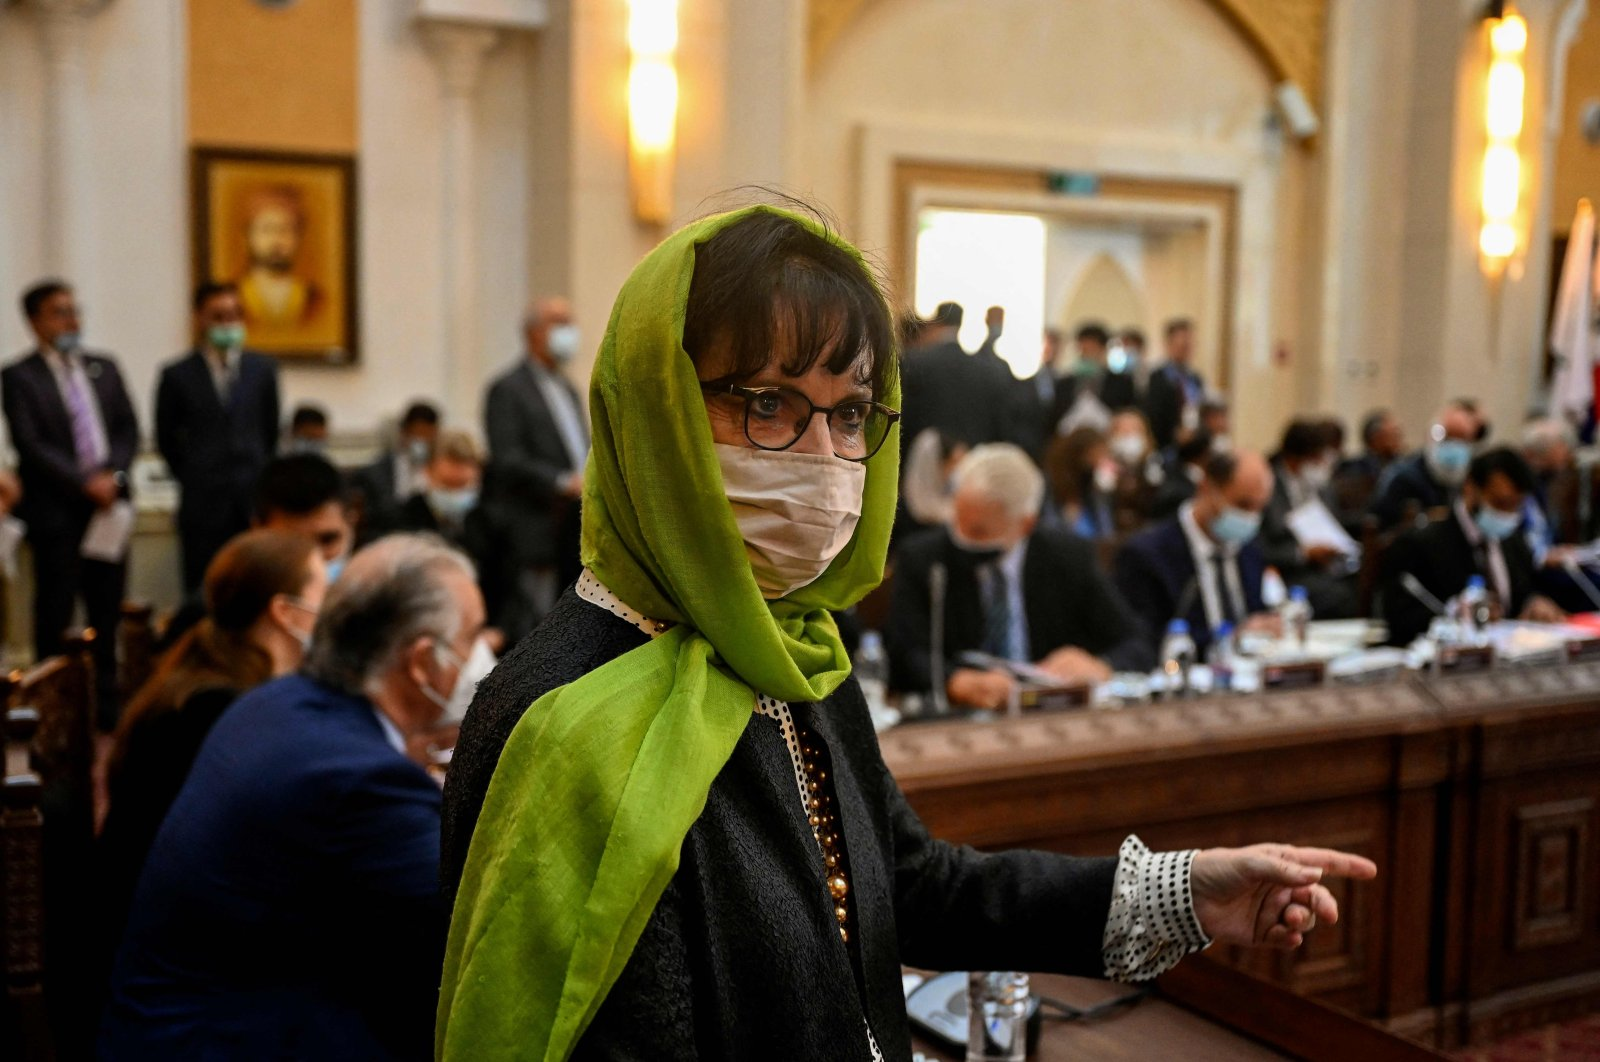 United Nations Assistance Mission in Afghanistan (UNAMA) head Deborah Lyons attends a Joint Coordination and Monitoring Board meeting (JCMB) at the Afghan presidential palace, Kabul, Afghanistan, July 28, 2021. (AFP Photo)